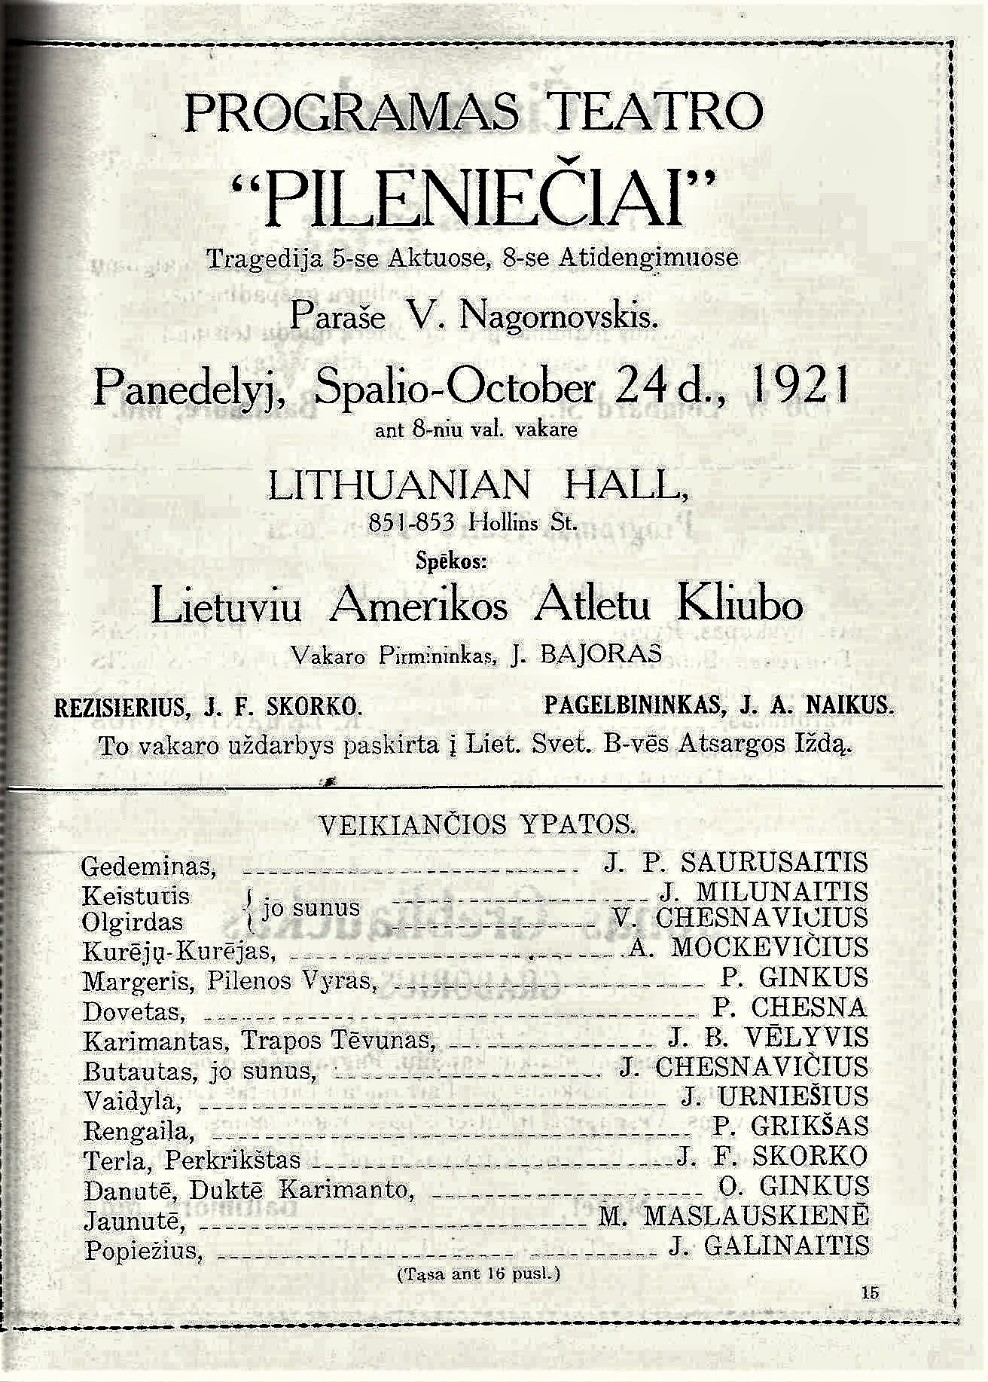 """Playbill for the Drama """"Pilienieciai,"""" October 24, 1921"""